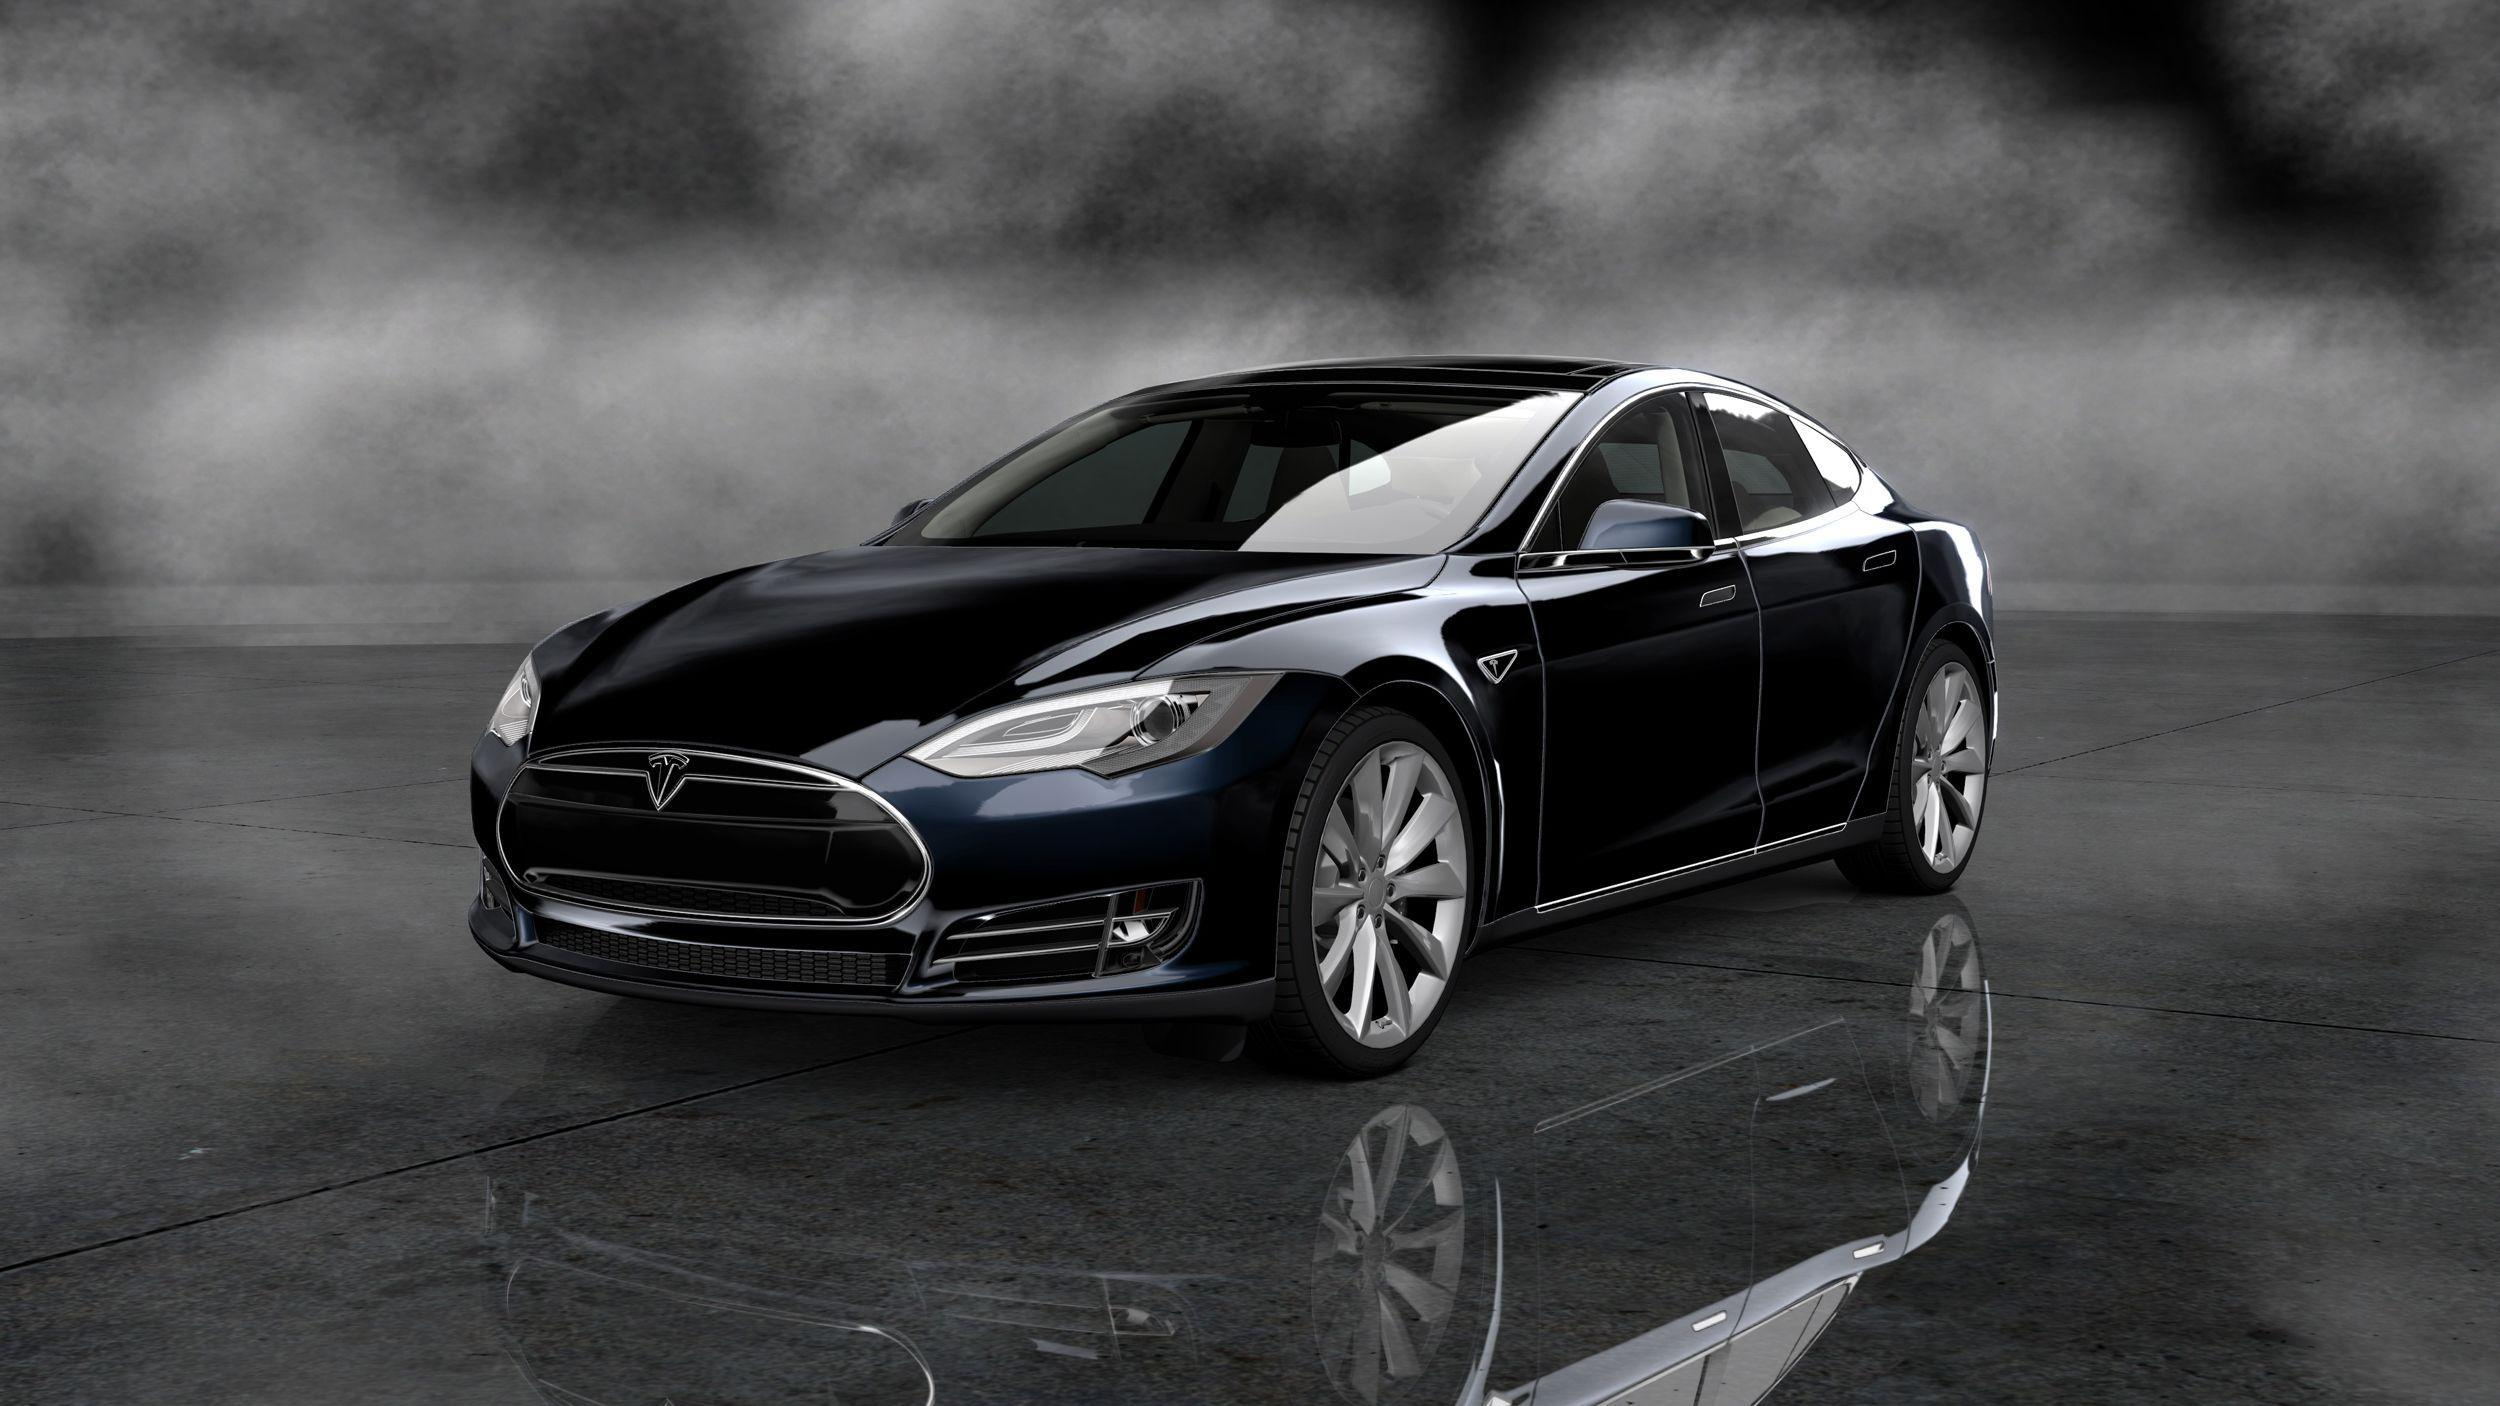 47 Widescreen 4K Ultra HD Wallpapers of Tesla for Windows and Mac